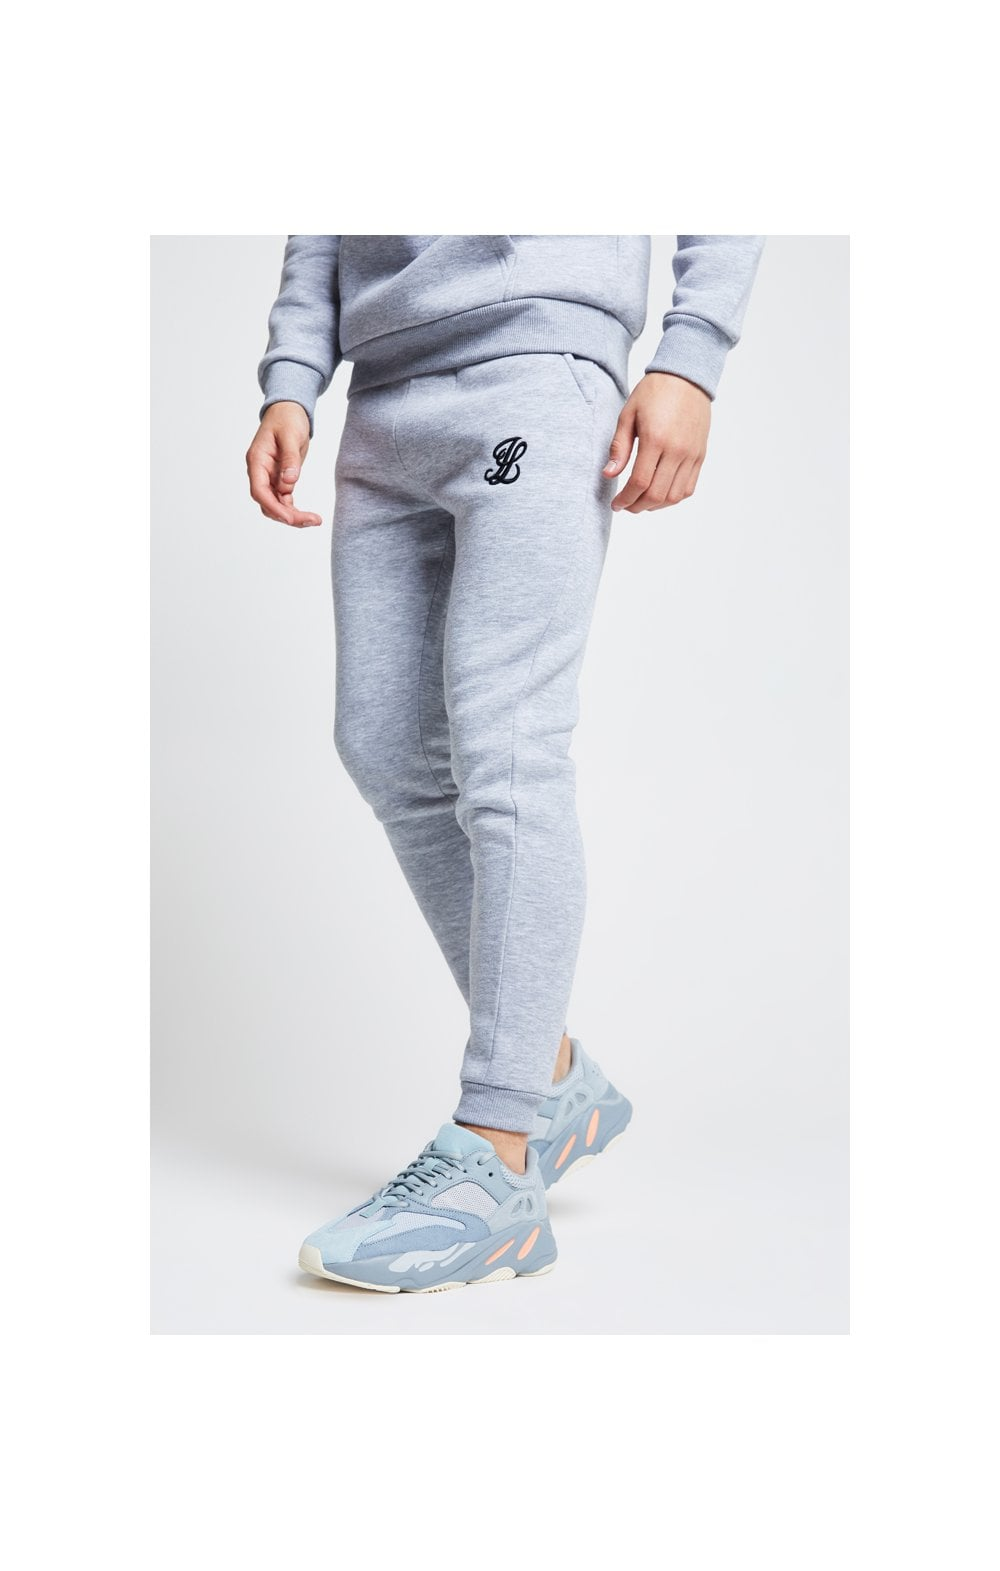 Illusive London Joggers – Grey Marl (1)